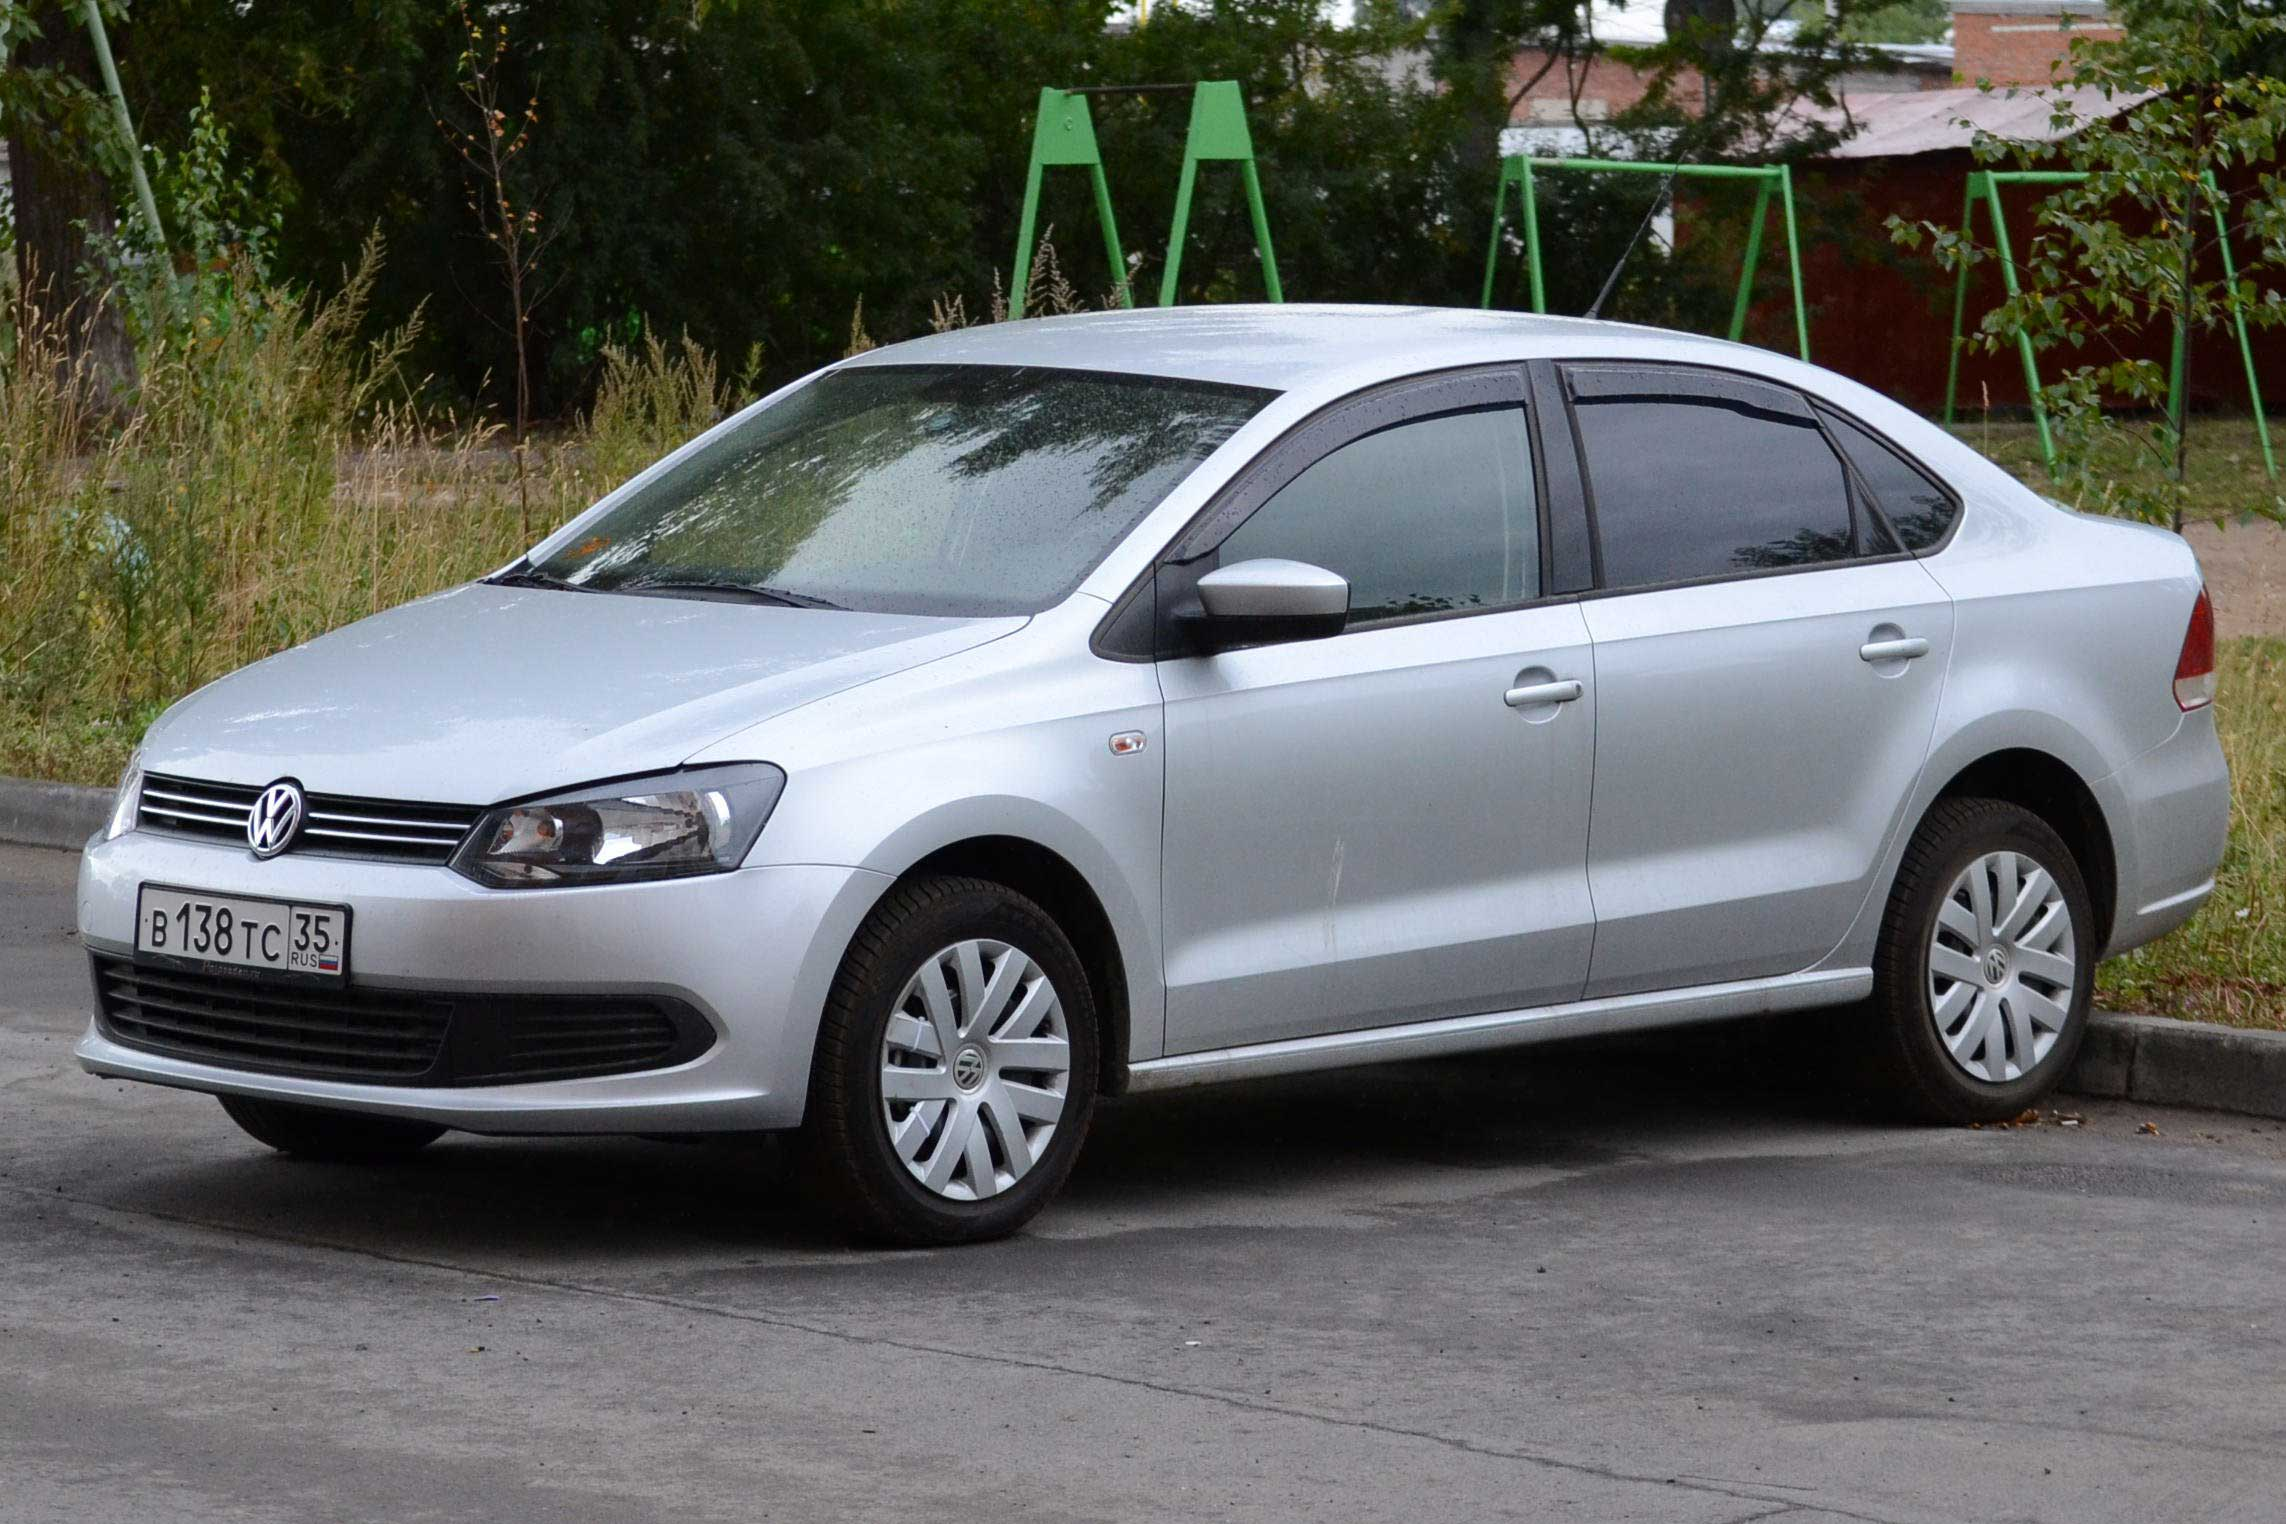 Volkswagen Polo Sedan 2